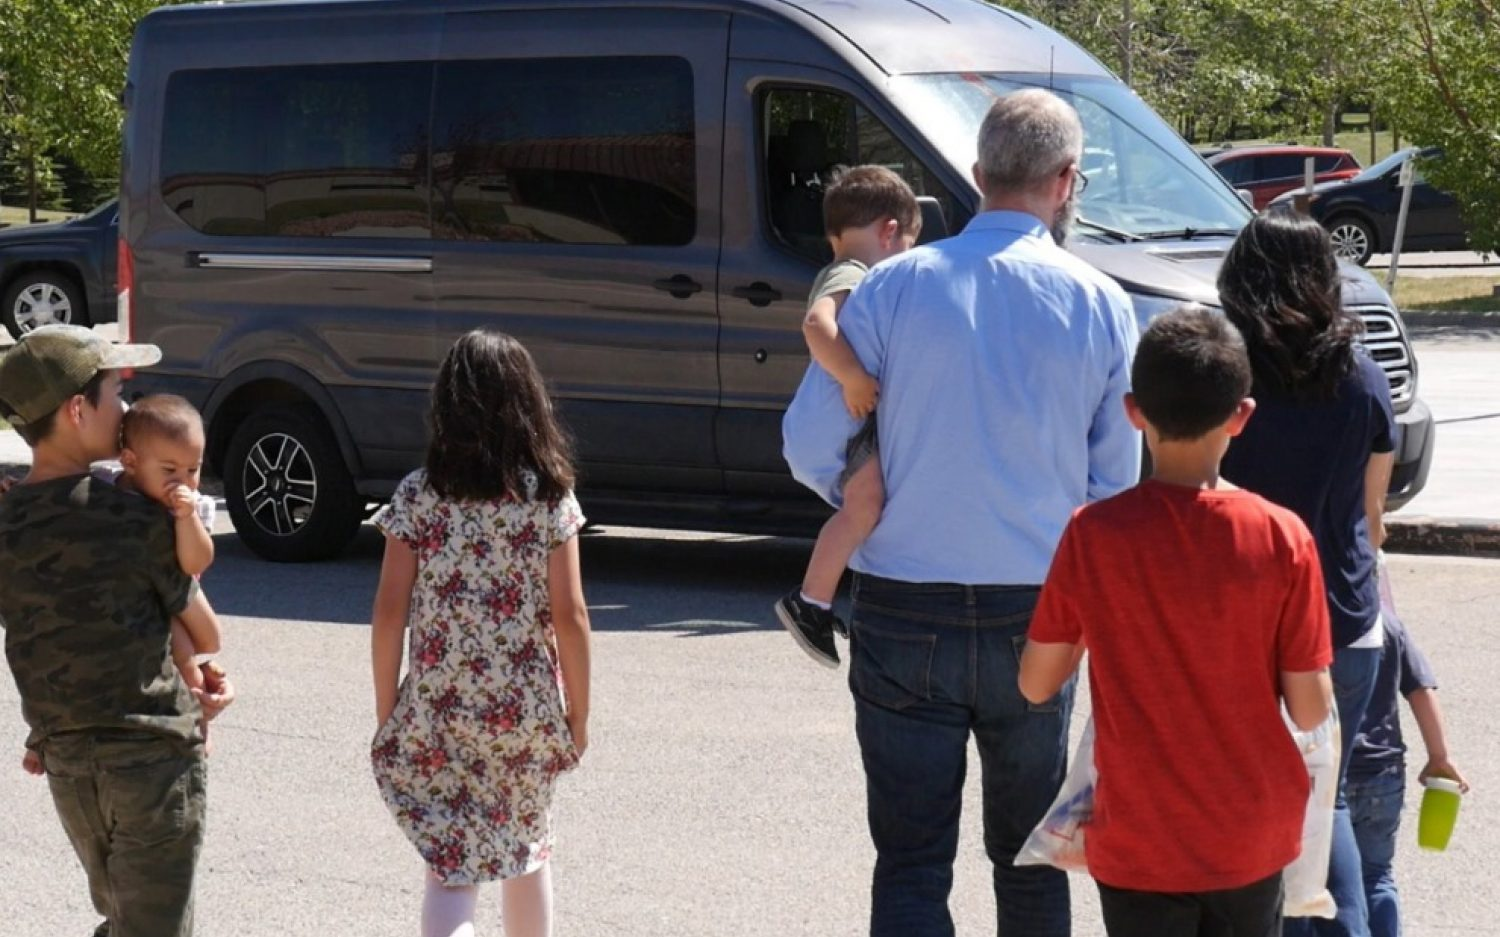 Canadian pastor released from prison